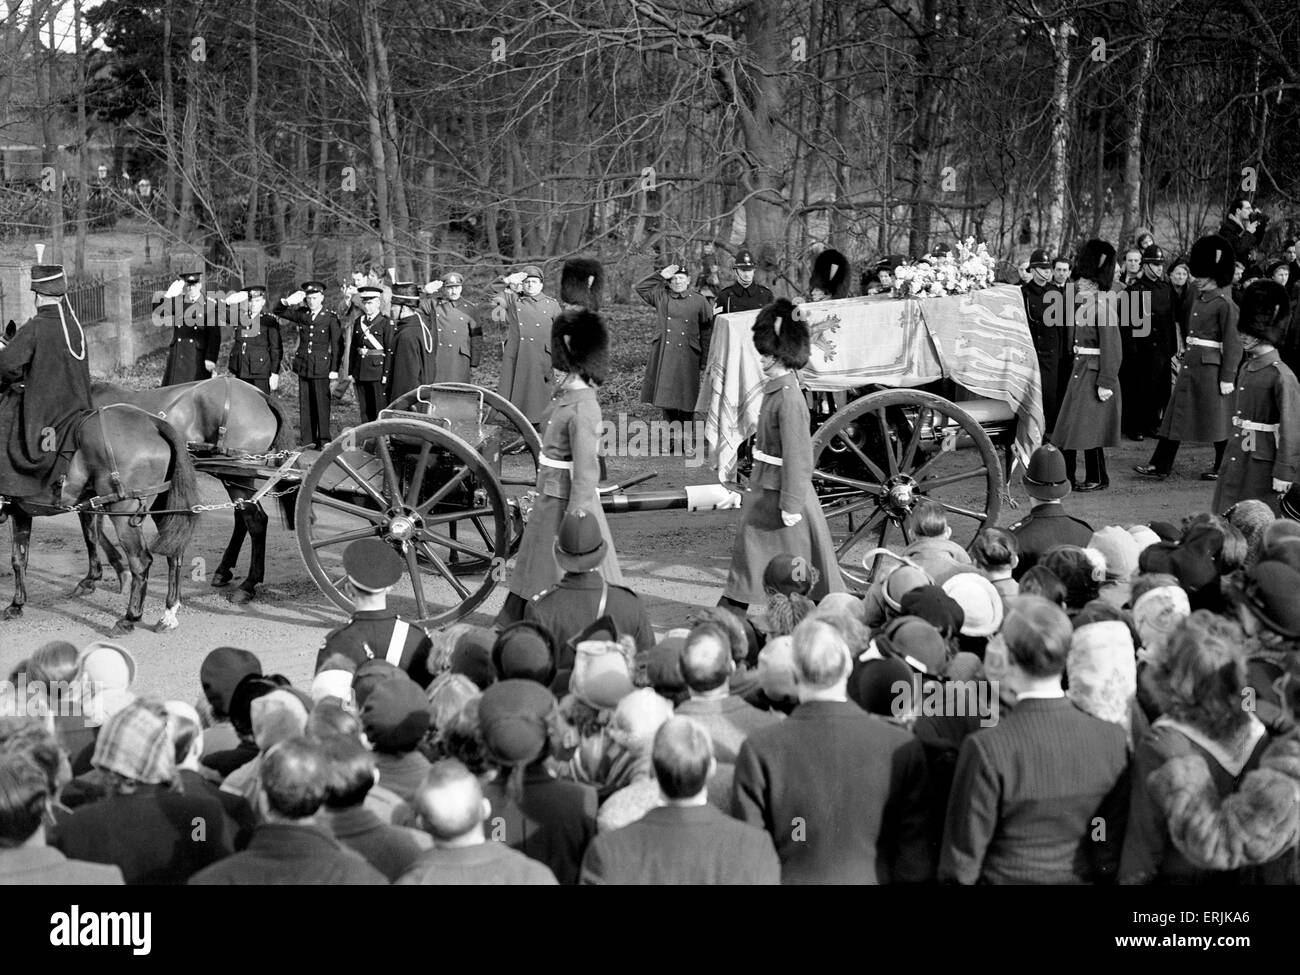 Funeral Procession of King George VI. 16th February 1952. - Stock Image